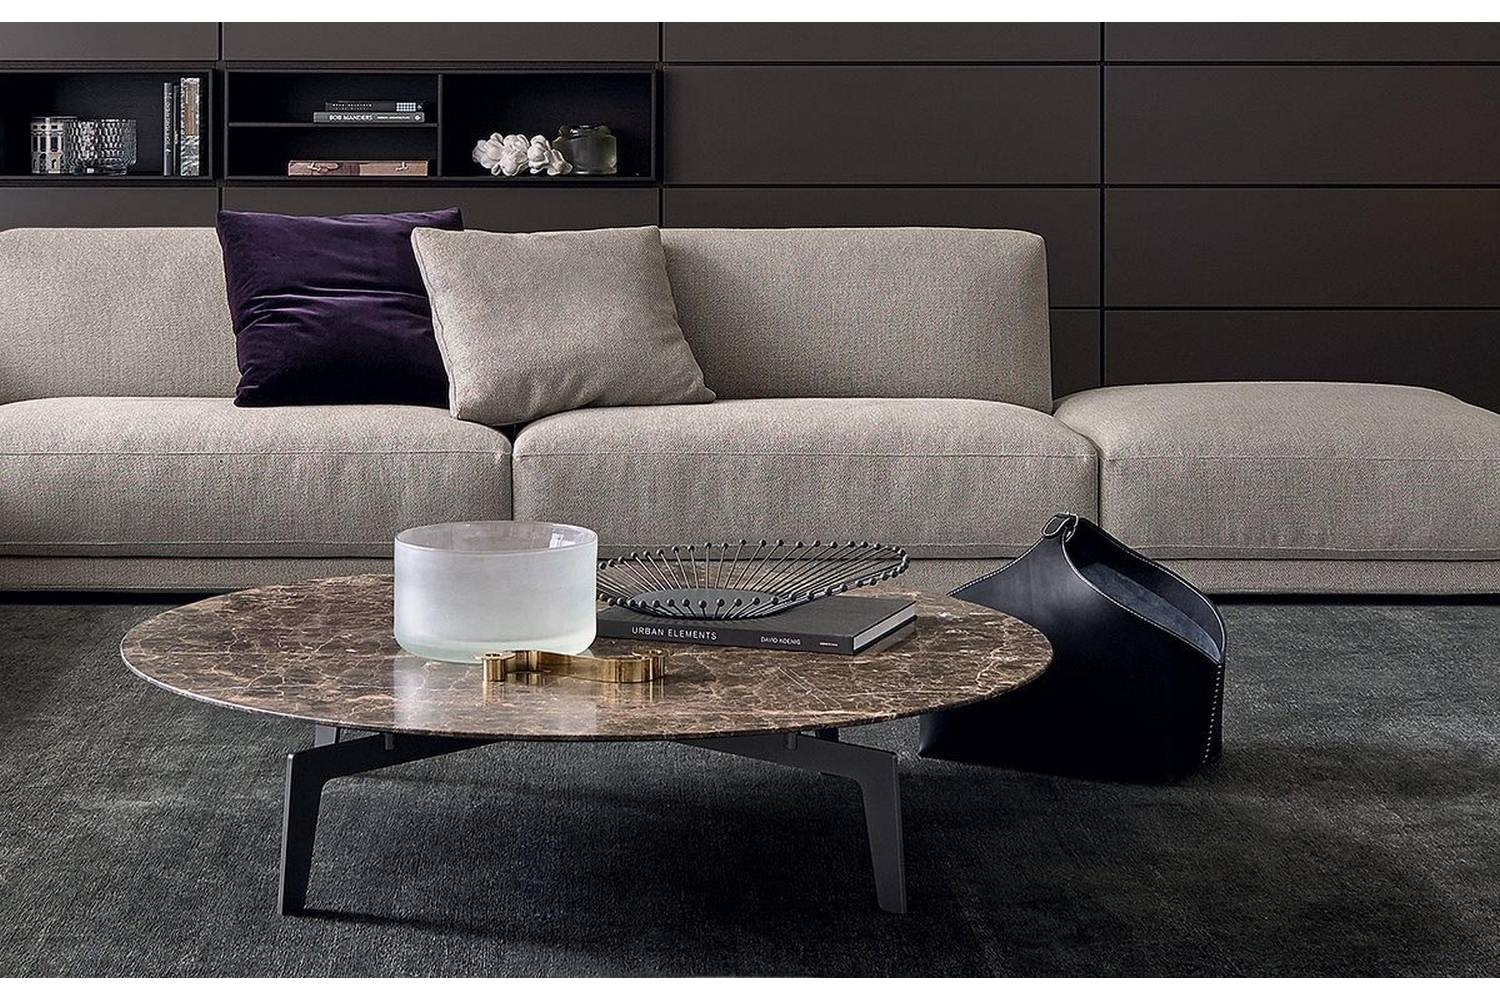 Tribeca Coffee Table by J. M. Massaud for Poliform